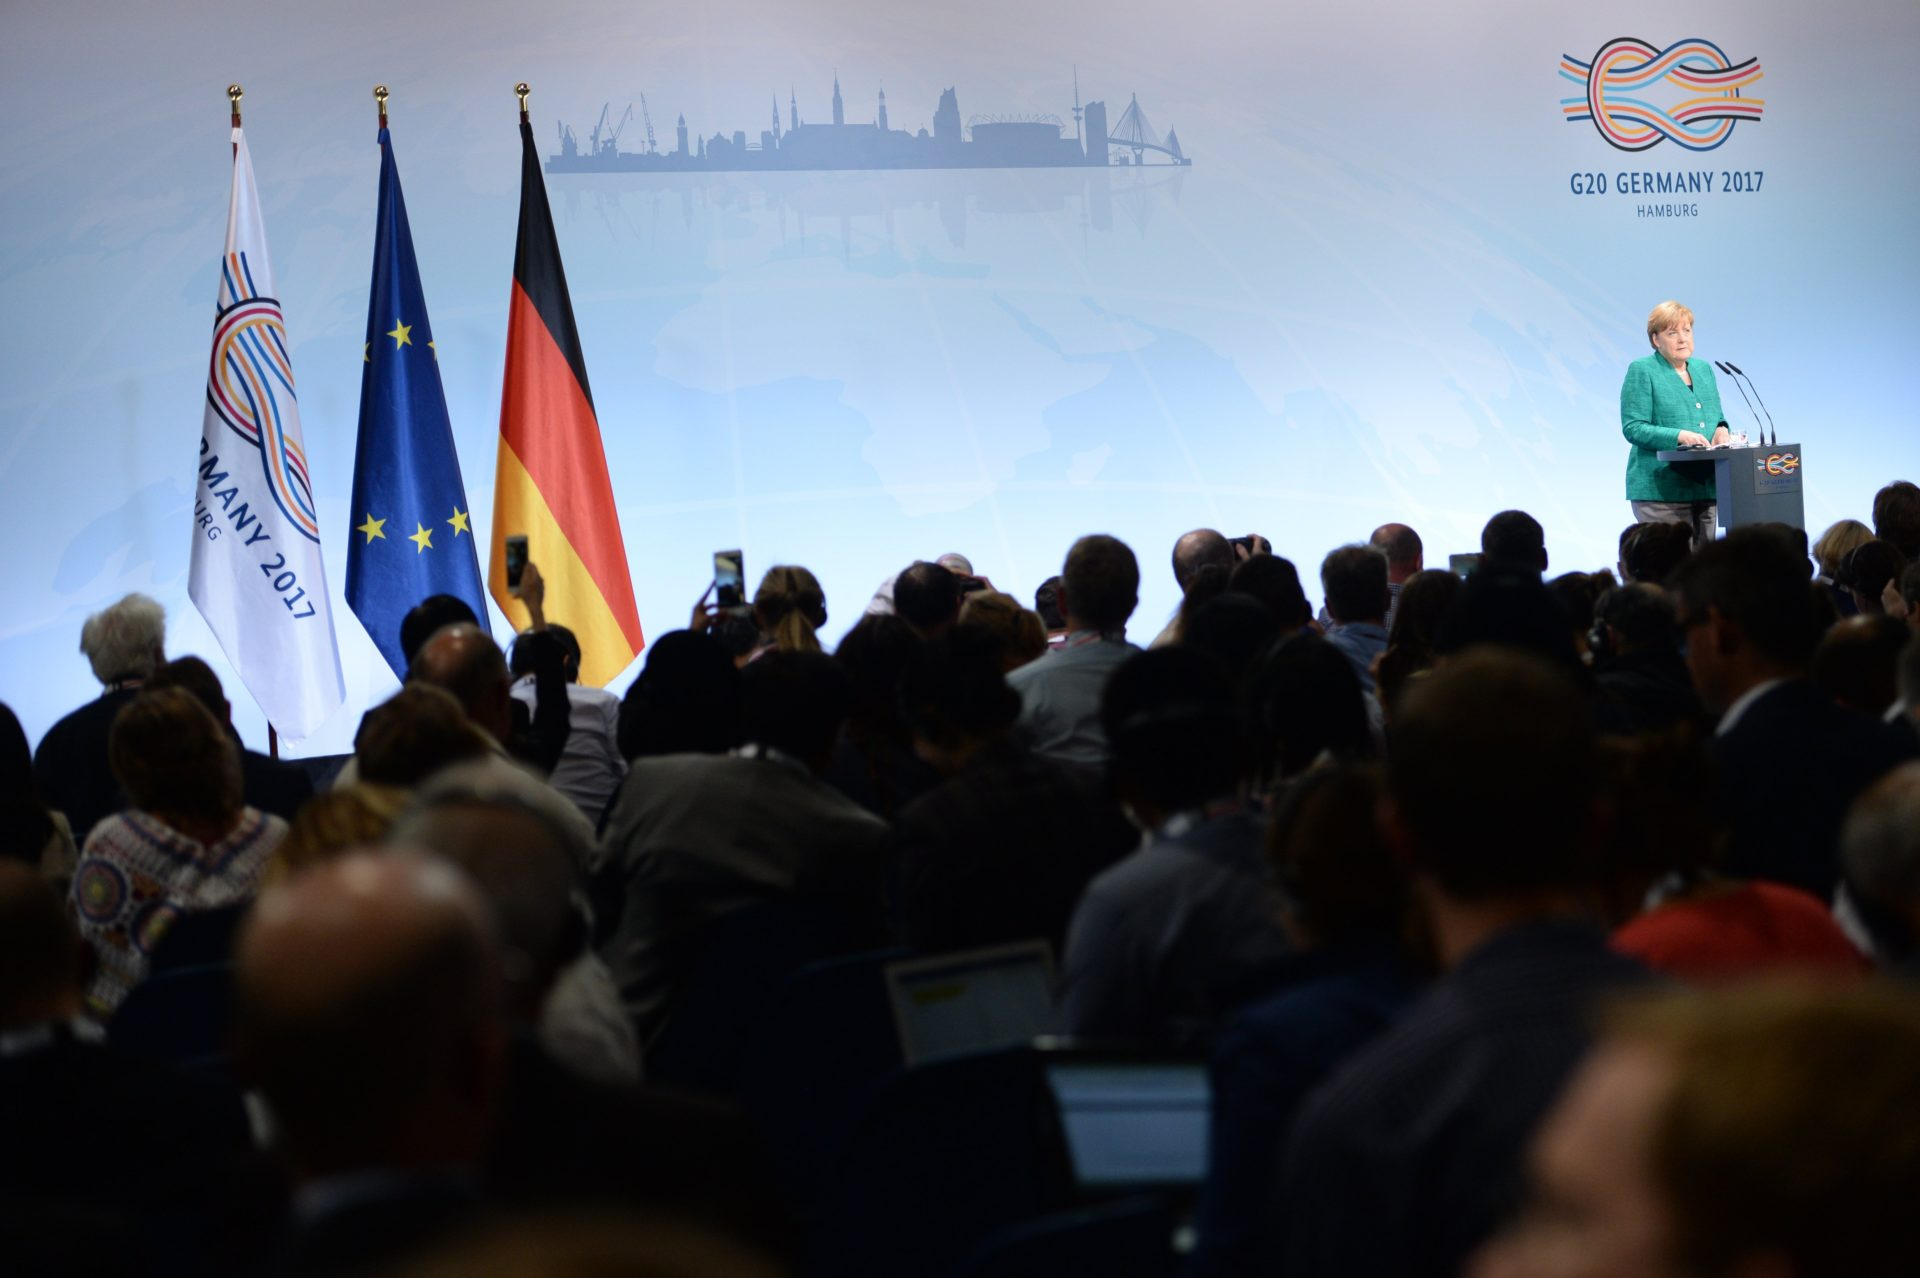 Hamburg (Germany), 08/07/2017.- German Chancellor Angela Merkel speaks at the closing press conference of the G-20 summit in Hamburg, Germany, 08 July 2017. The G20 Summit (or G-20 or Group of Twenty) is an international forum for governments from 20 major economies. The summit is taking place in Hamburg from 07 to 08 July 2017. (Hamburgo, Alemania) EFE/EPA/DANIEL KOPATSCH